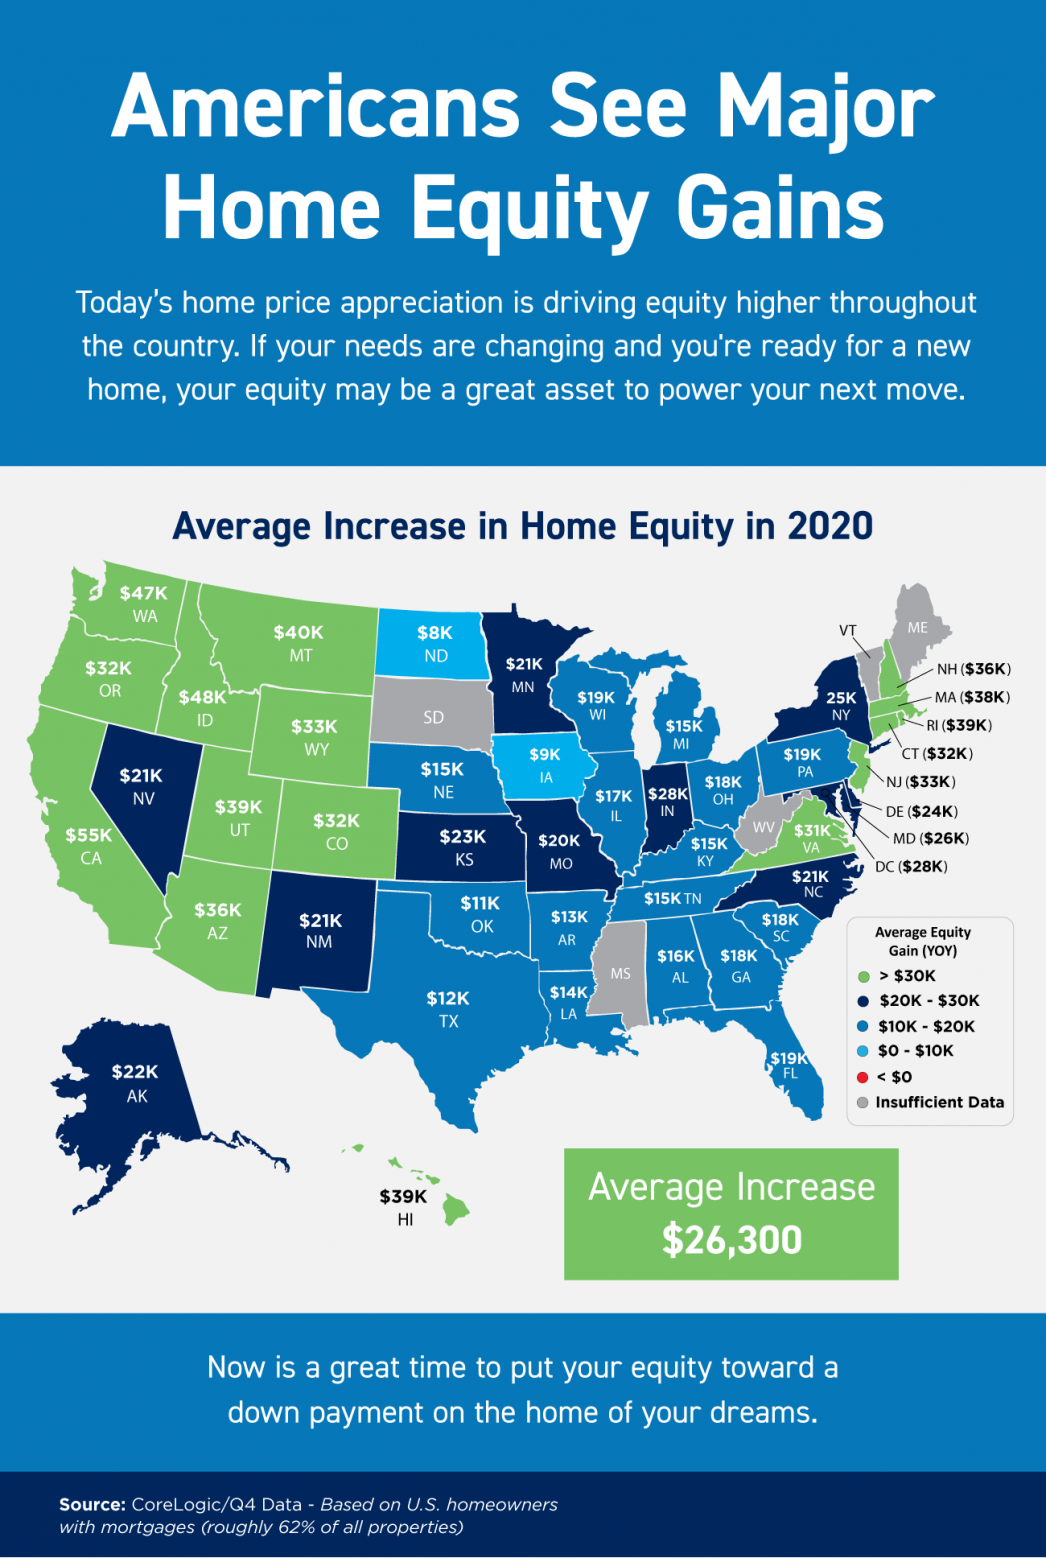 Americans See Major Home Equity Gains [INFOGRAPHIC] | MyKCM